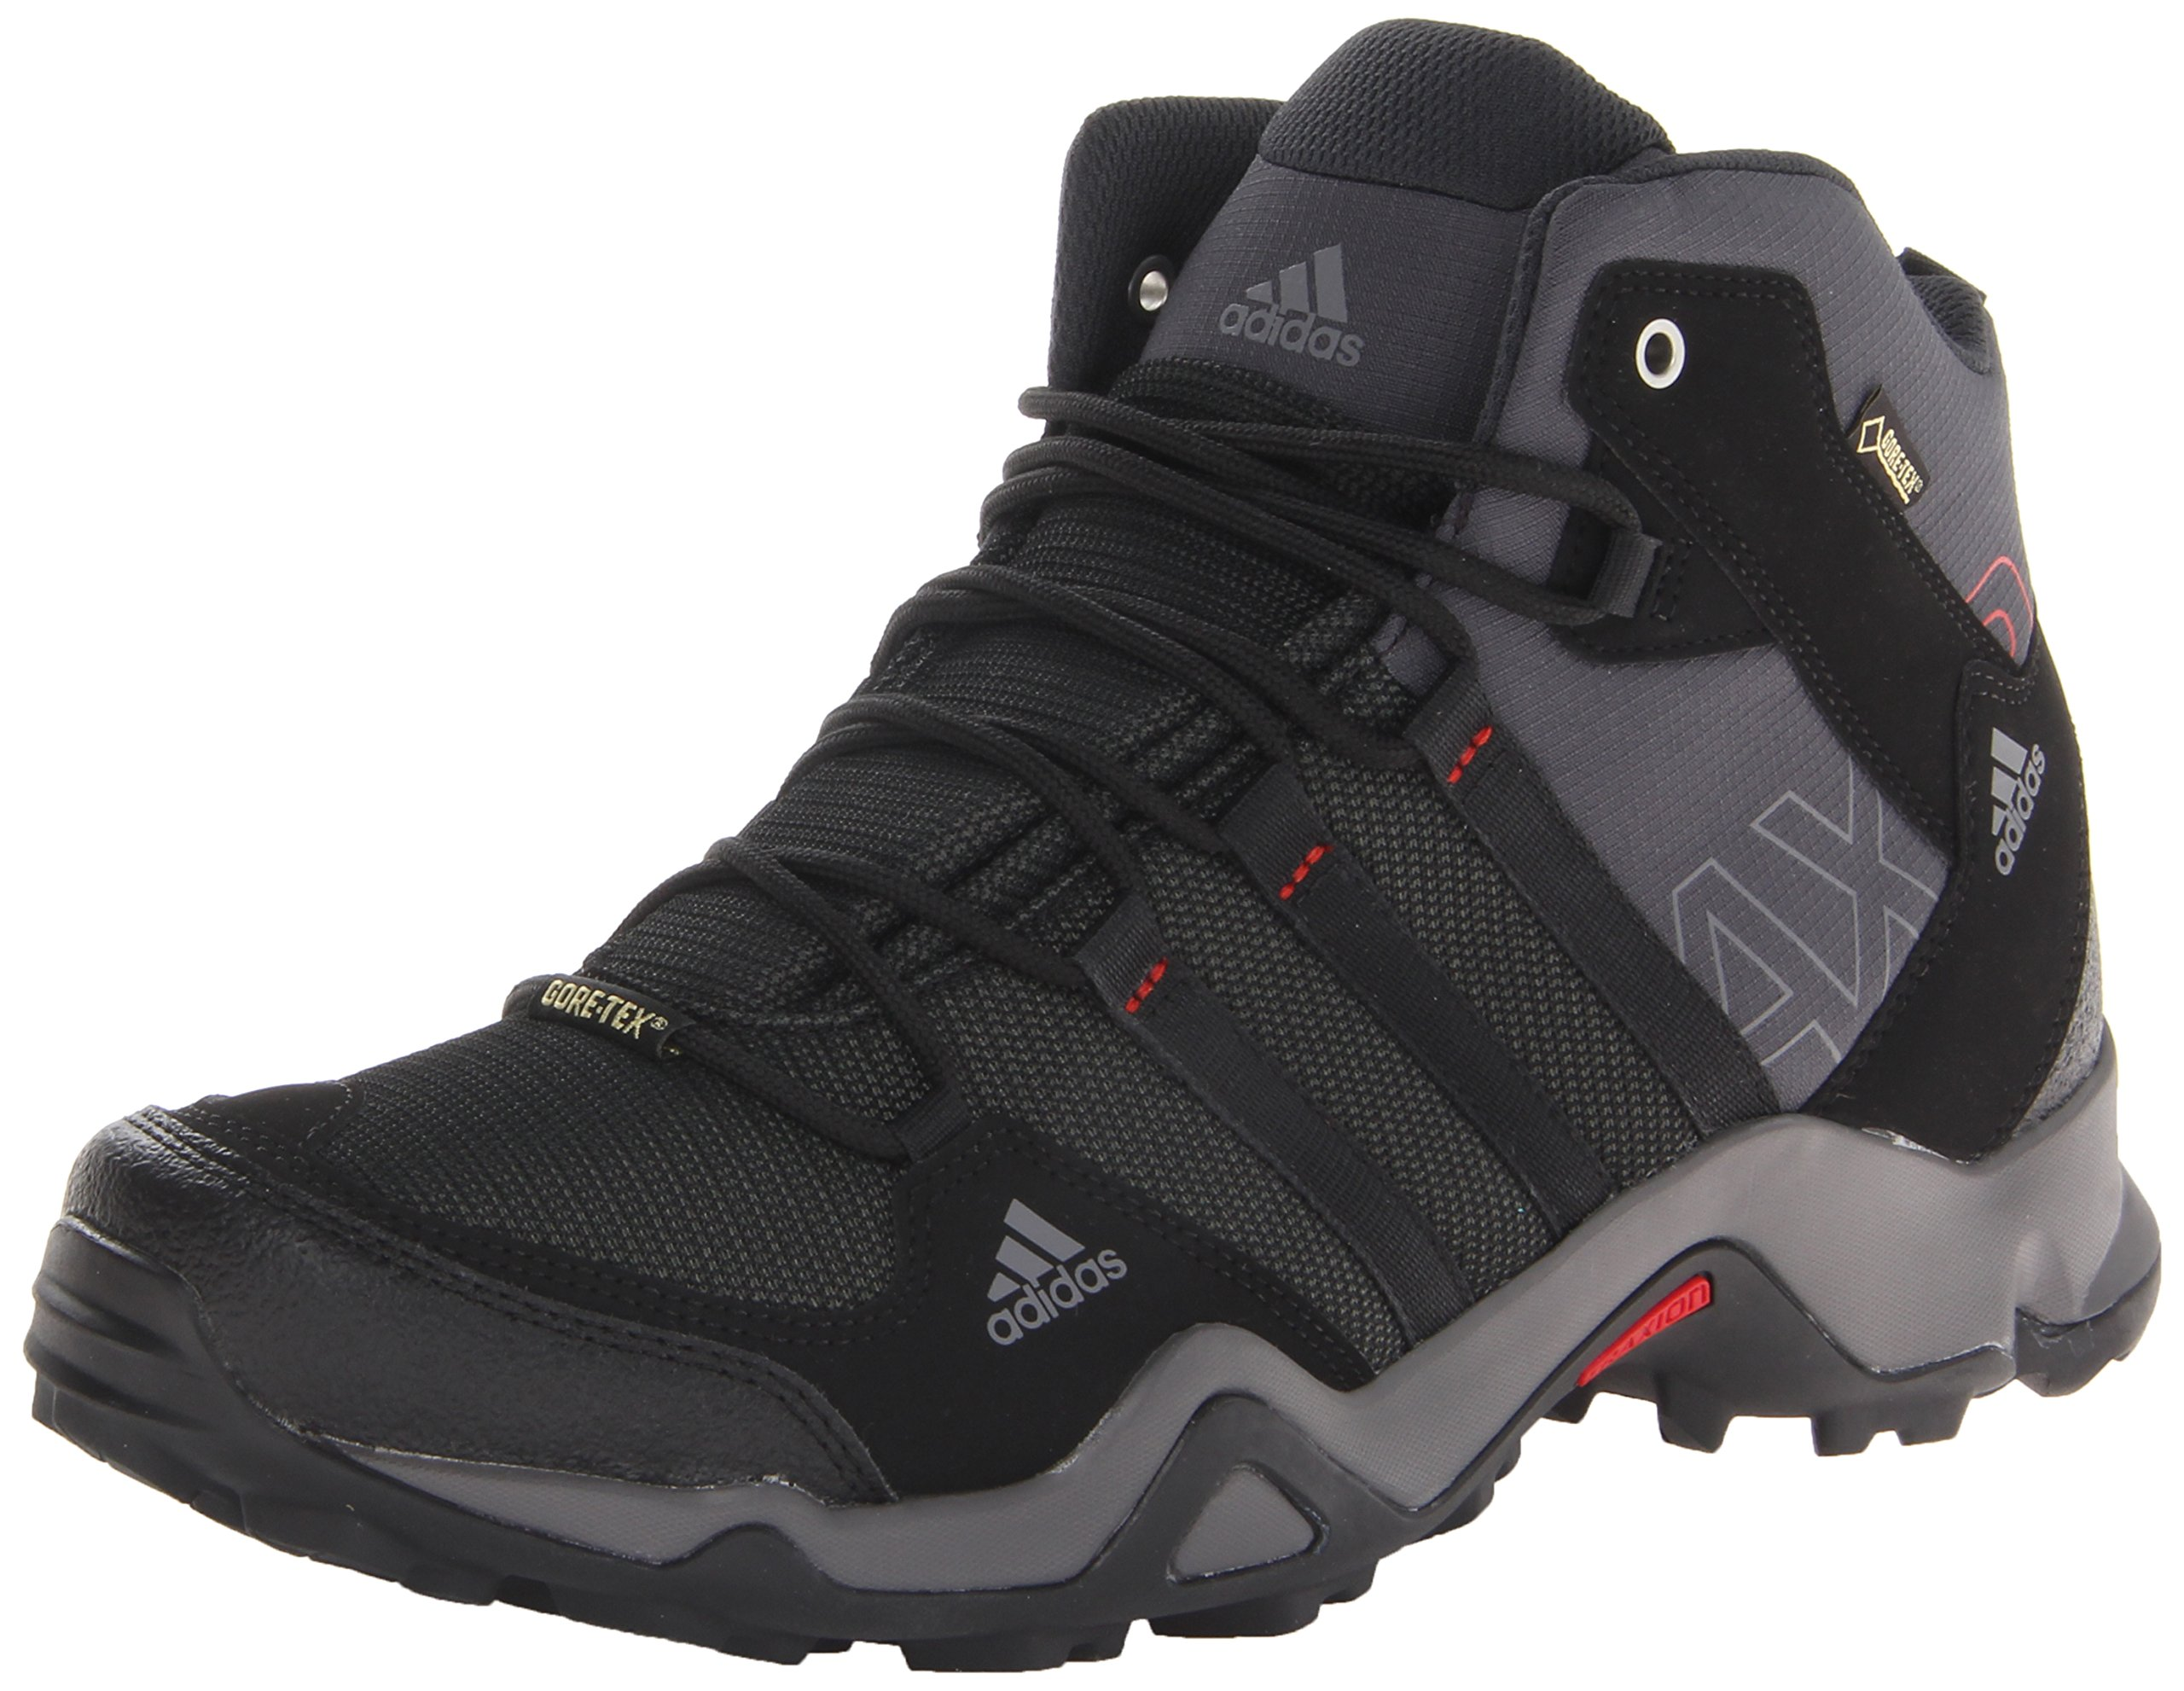 gore hiking mid foo comforter skyline boots comfortable w most front tex